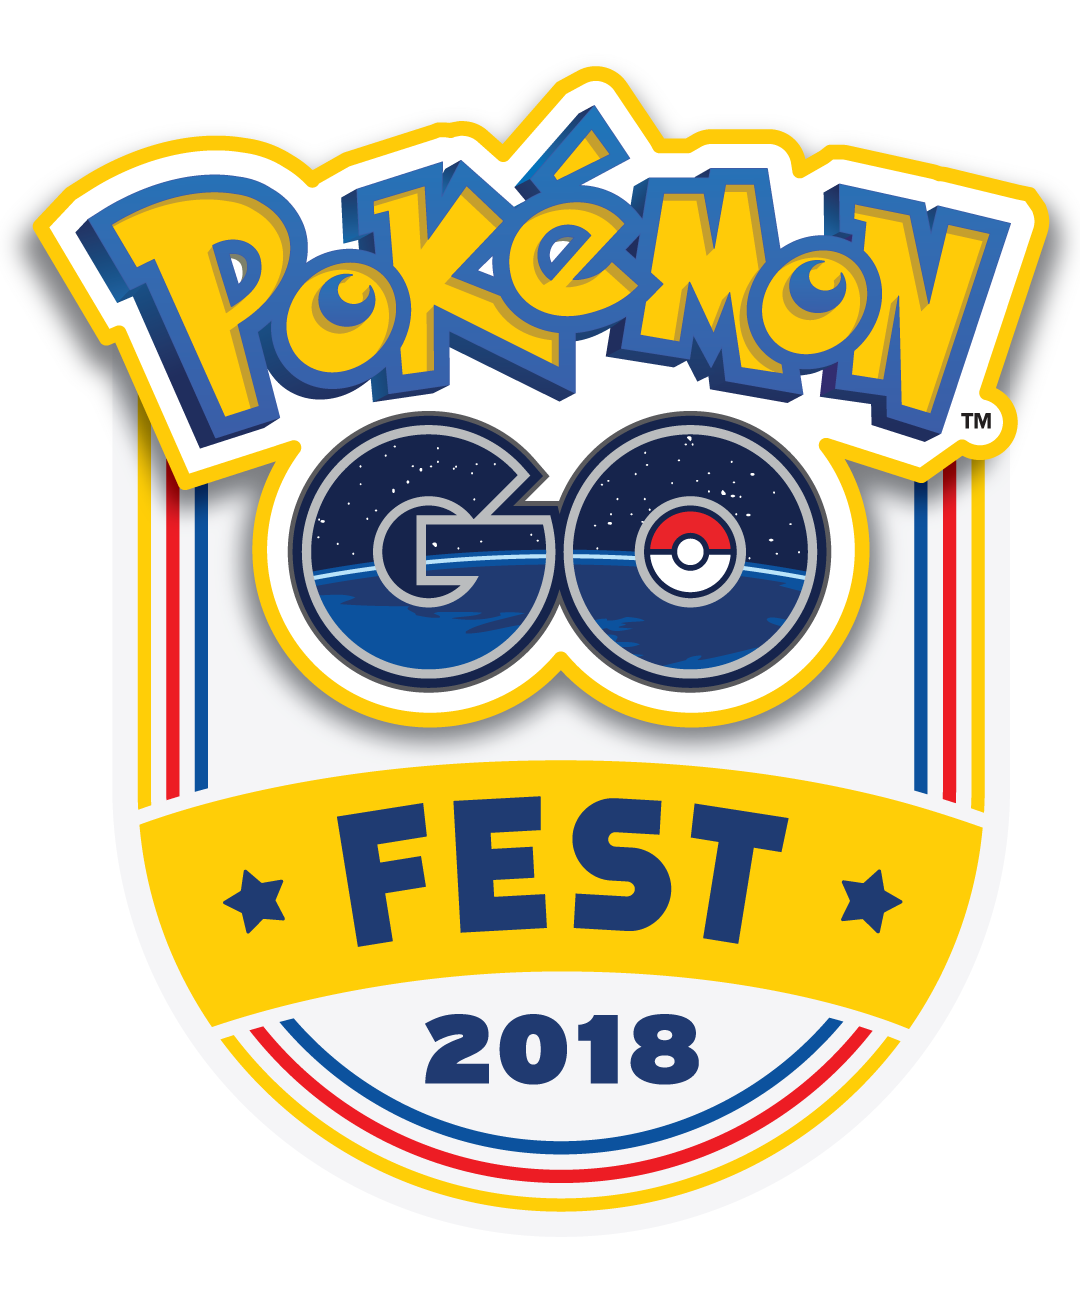 Pokémon GO Events - Pokémon GO